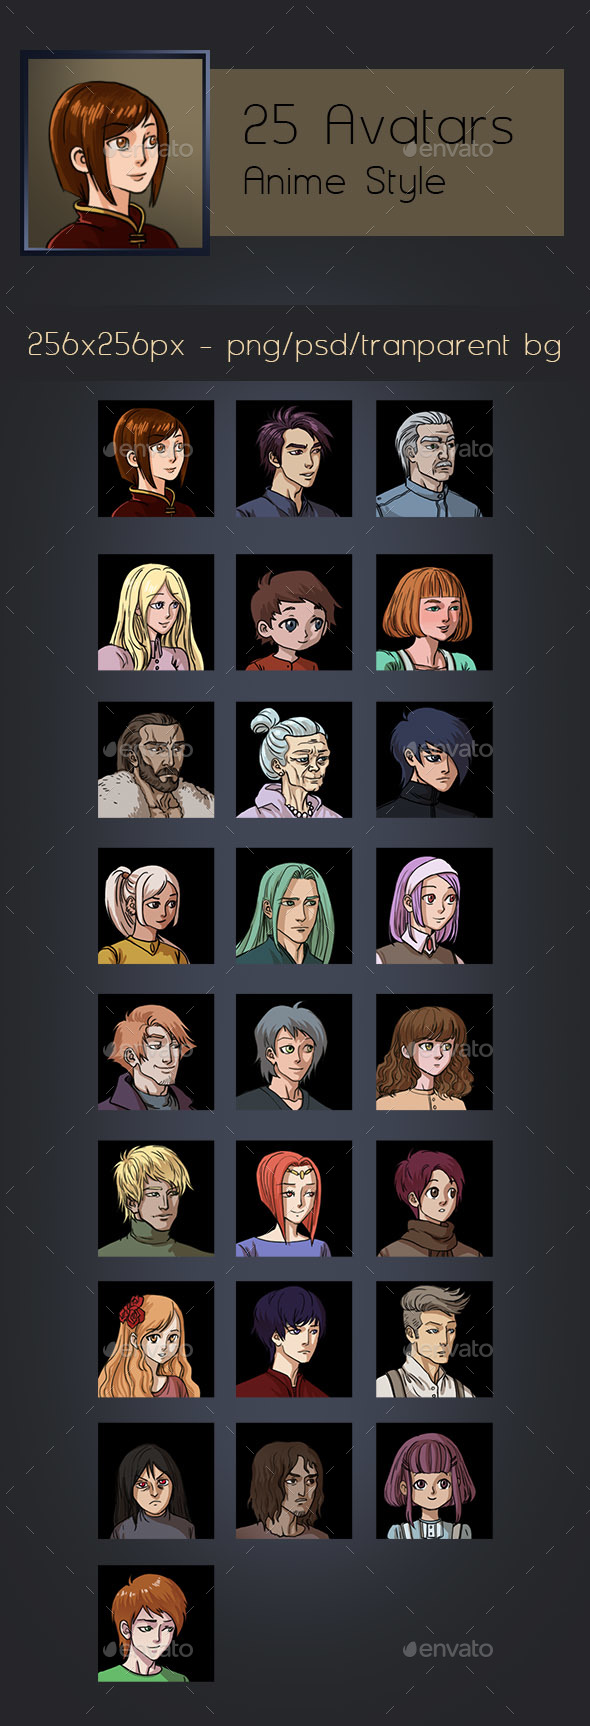 25 Avatars - Anime Style - Miscellaneous Game Assets